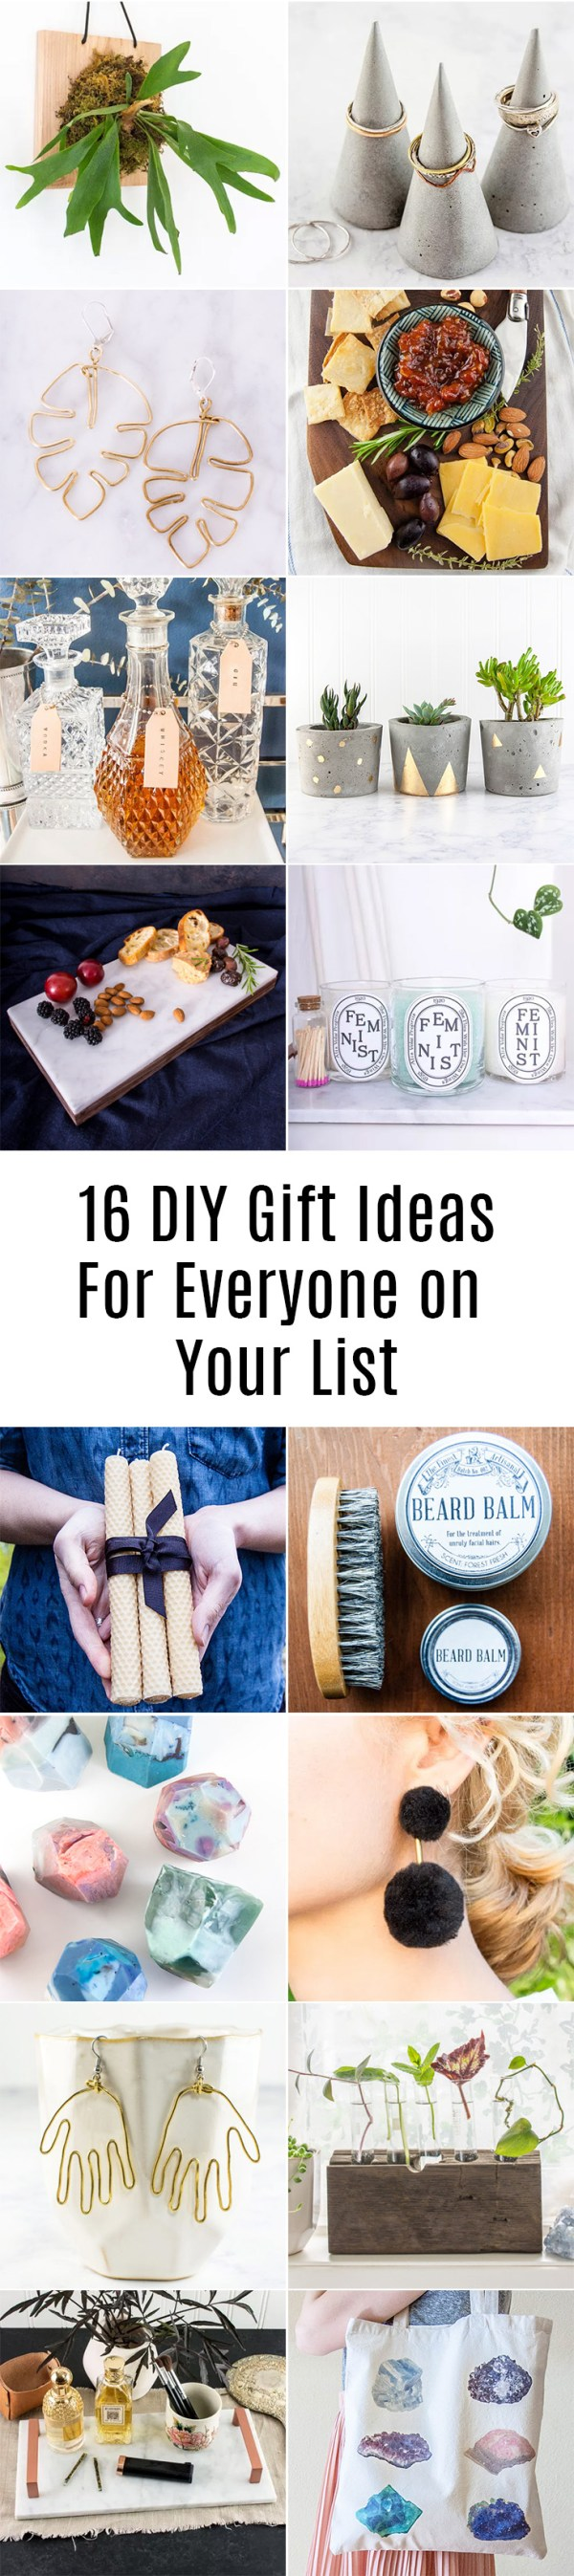 16 DIY Gifts Ideas For Everyone On Your List